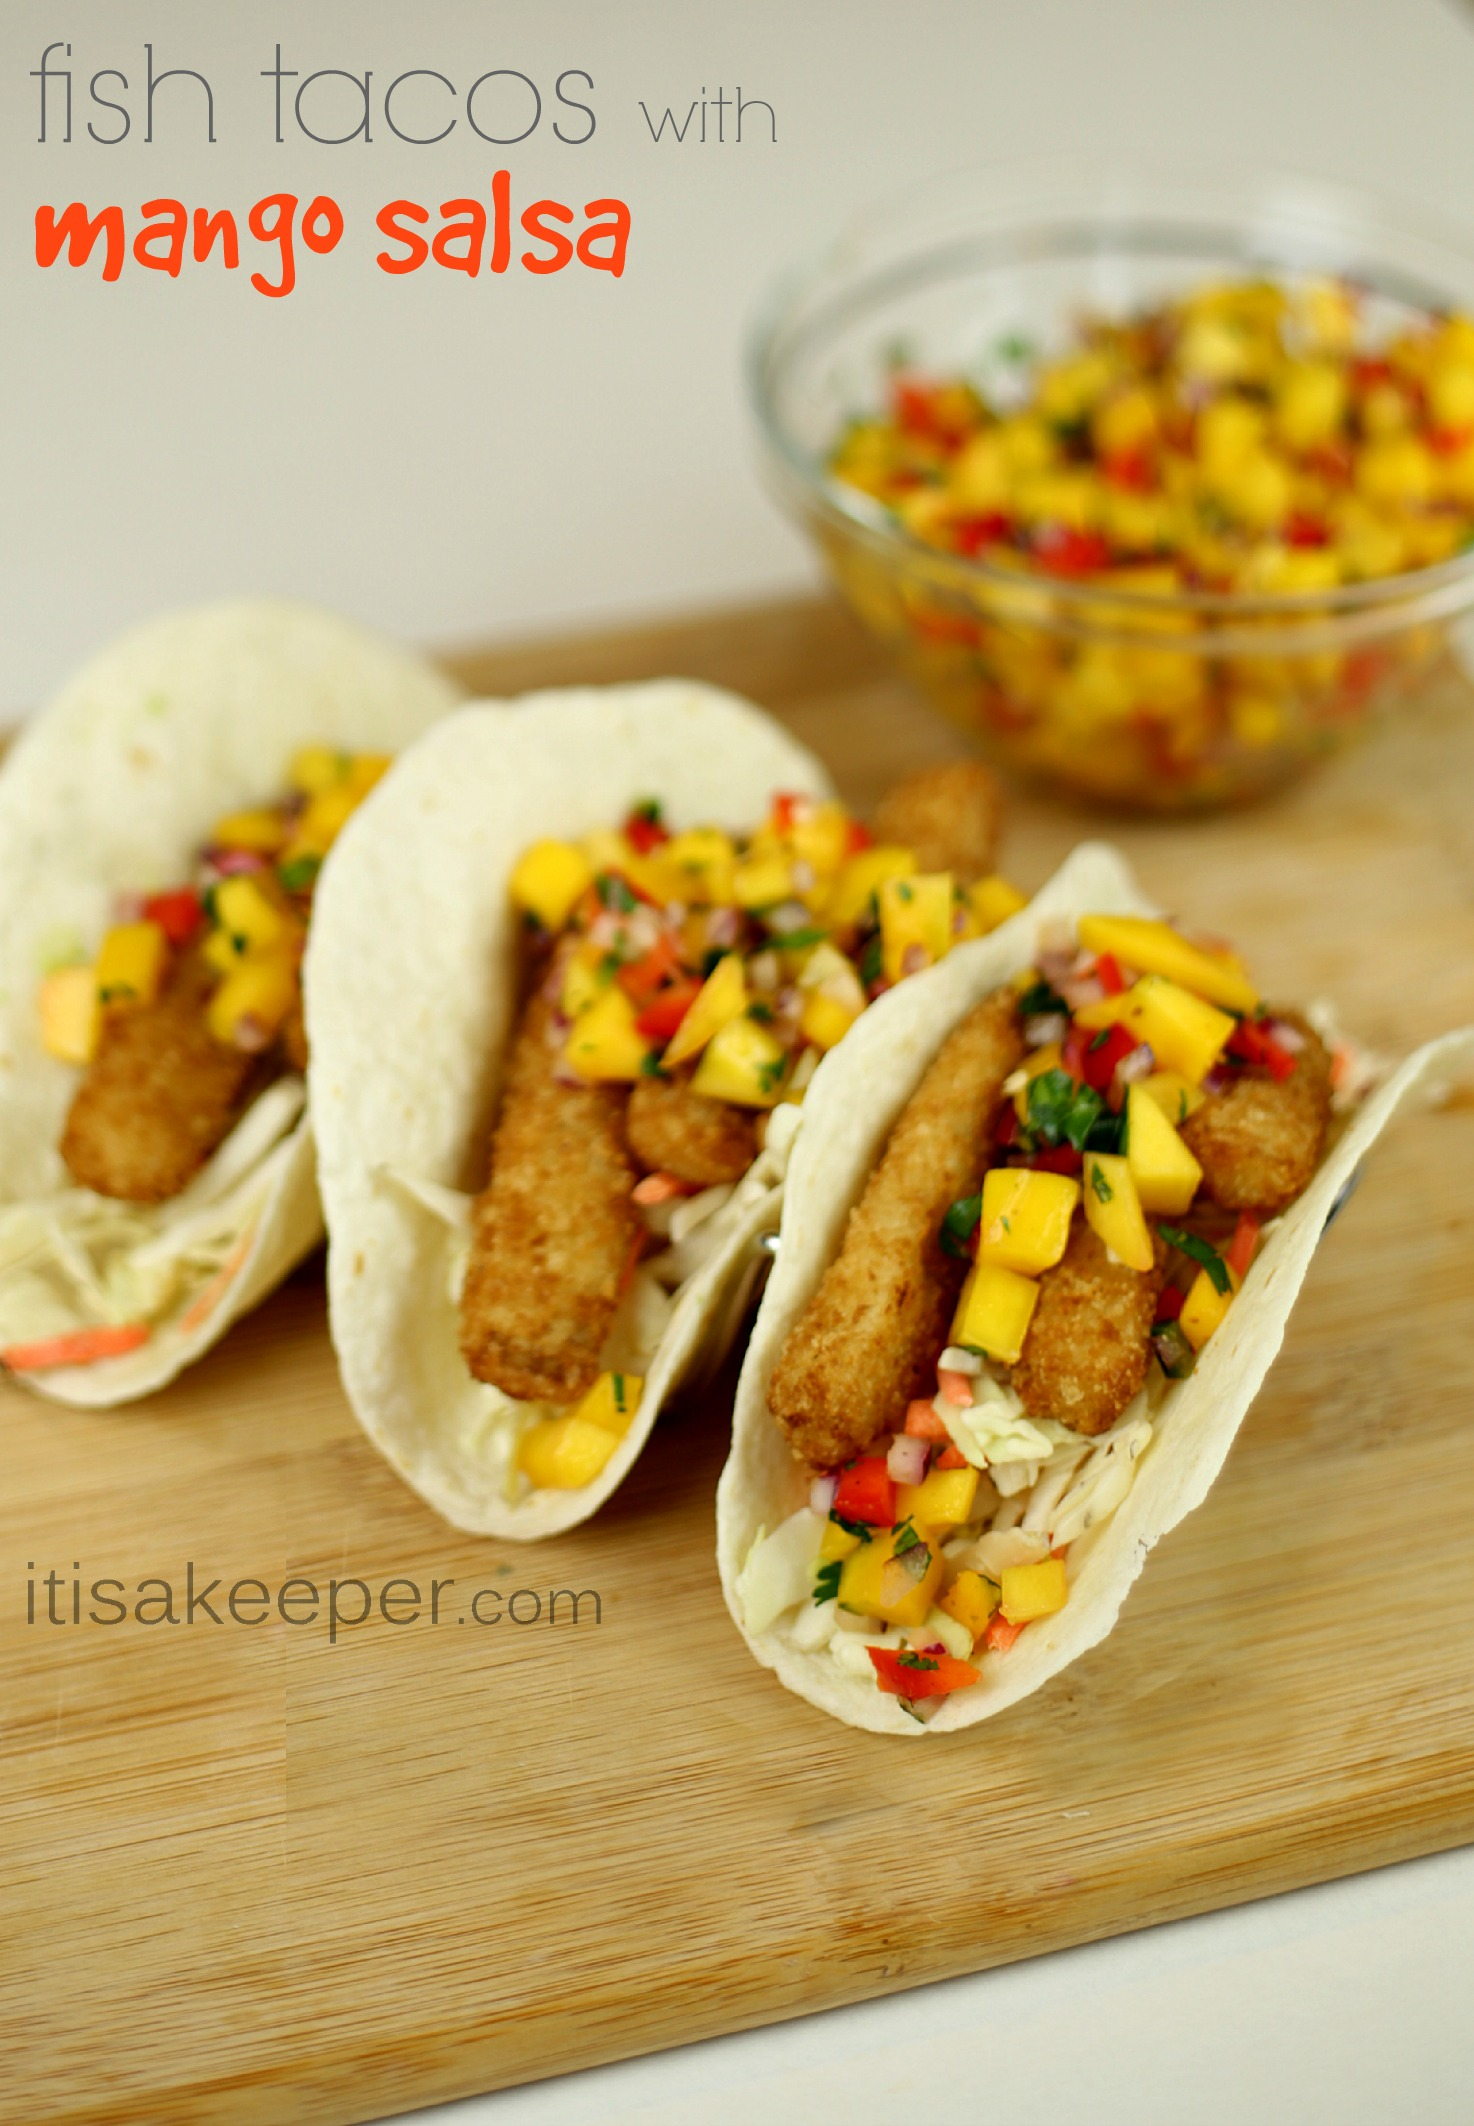 fish tacos with mango salsa recipe it is a keeper